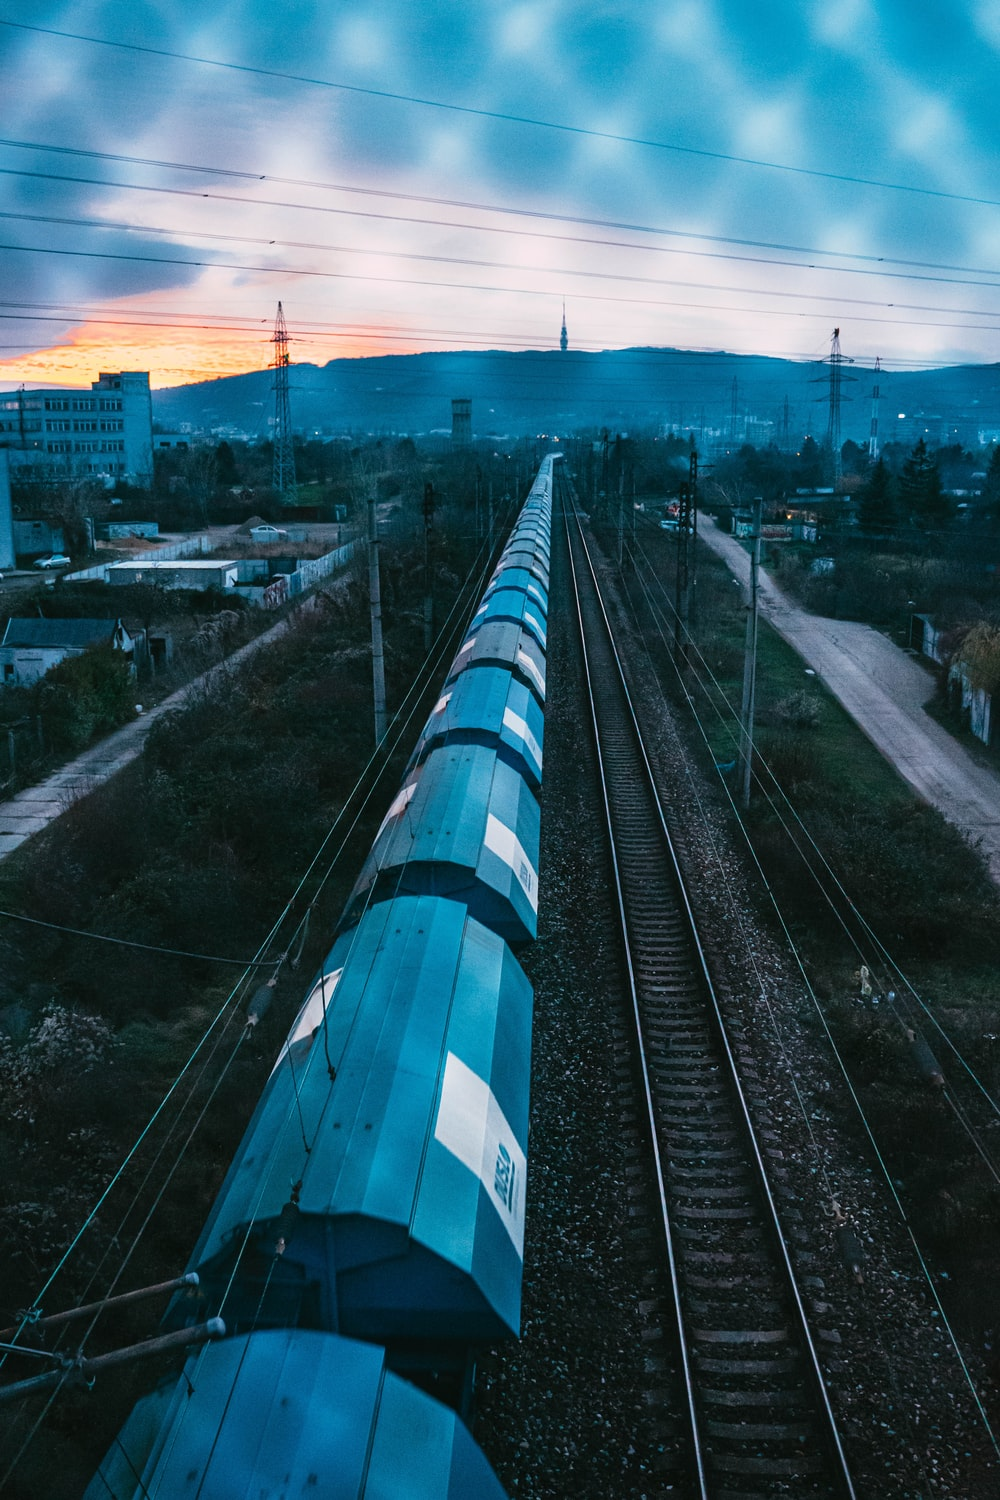 blue and white train on rail tracks during daytime